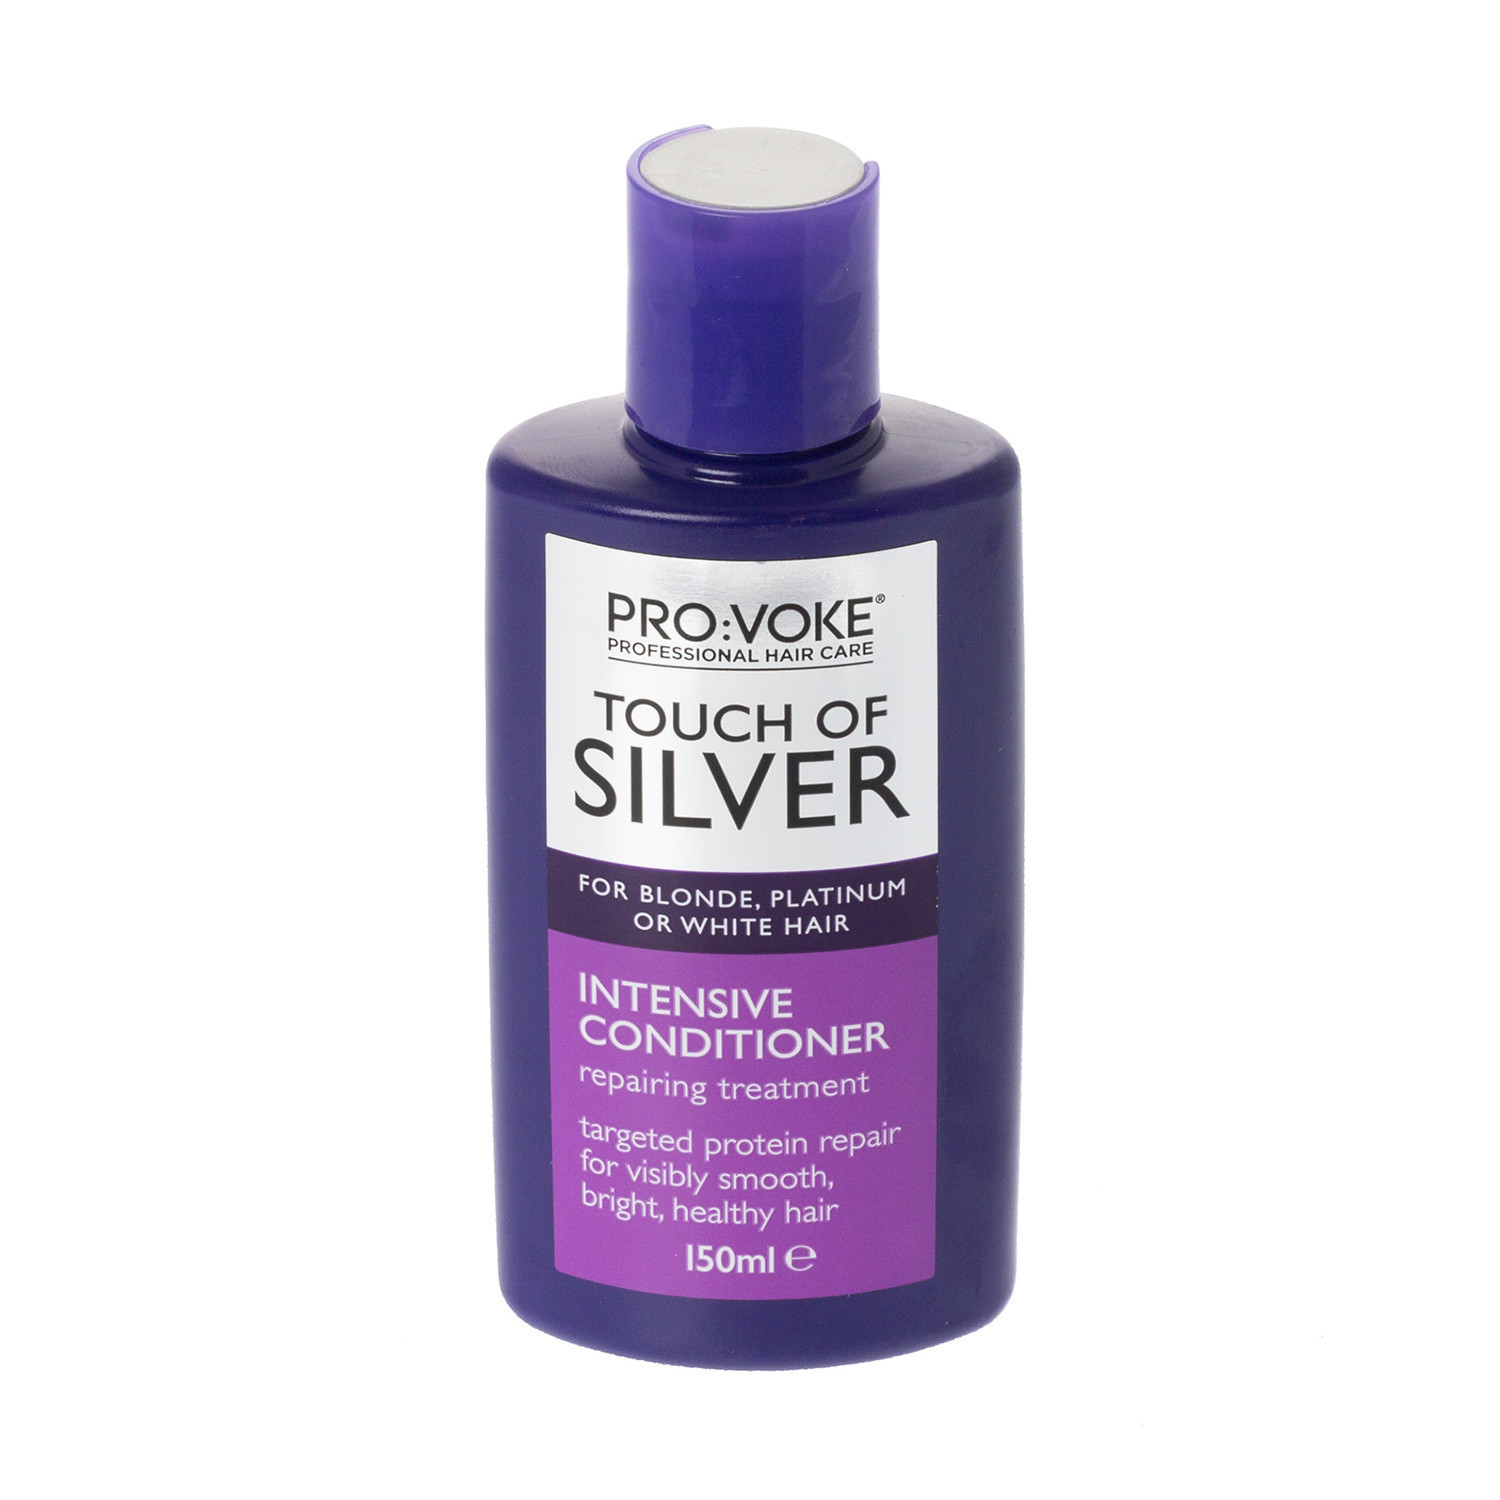 PRO:VOKE Touch Of Silver Intensive Conditioner